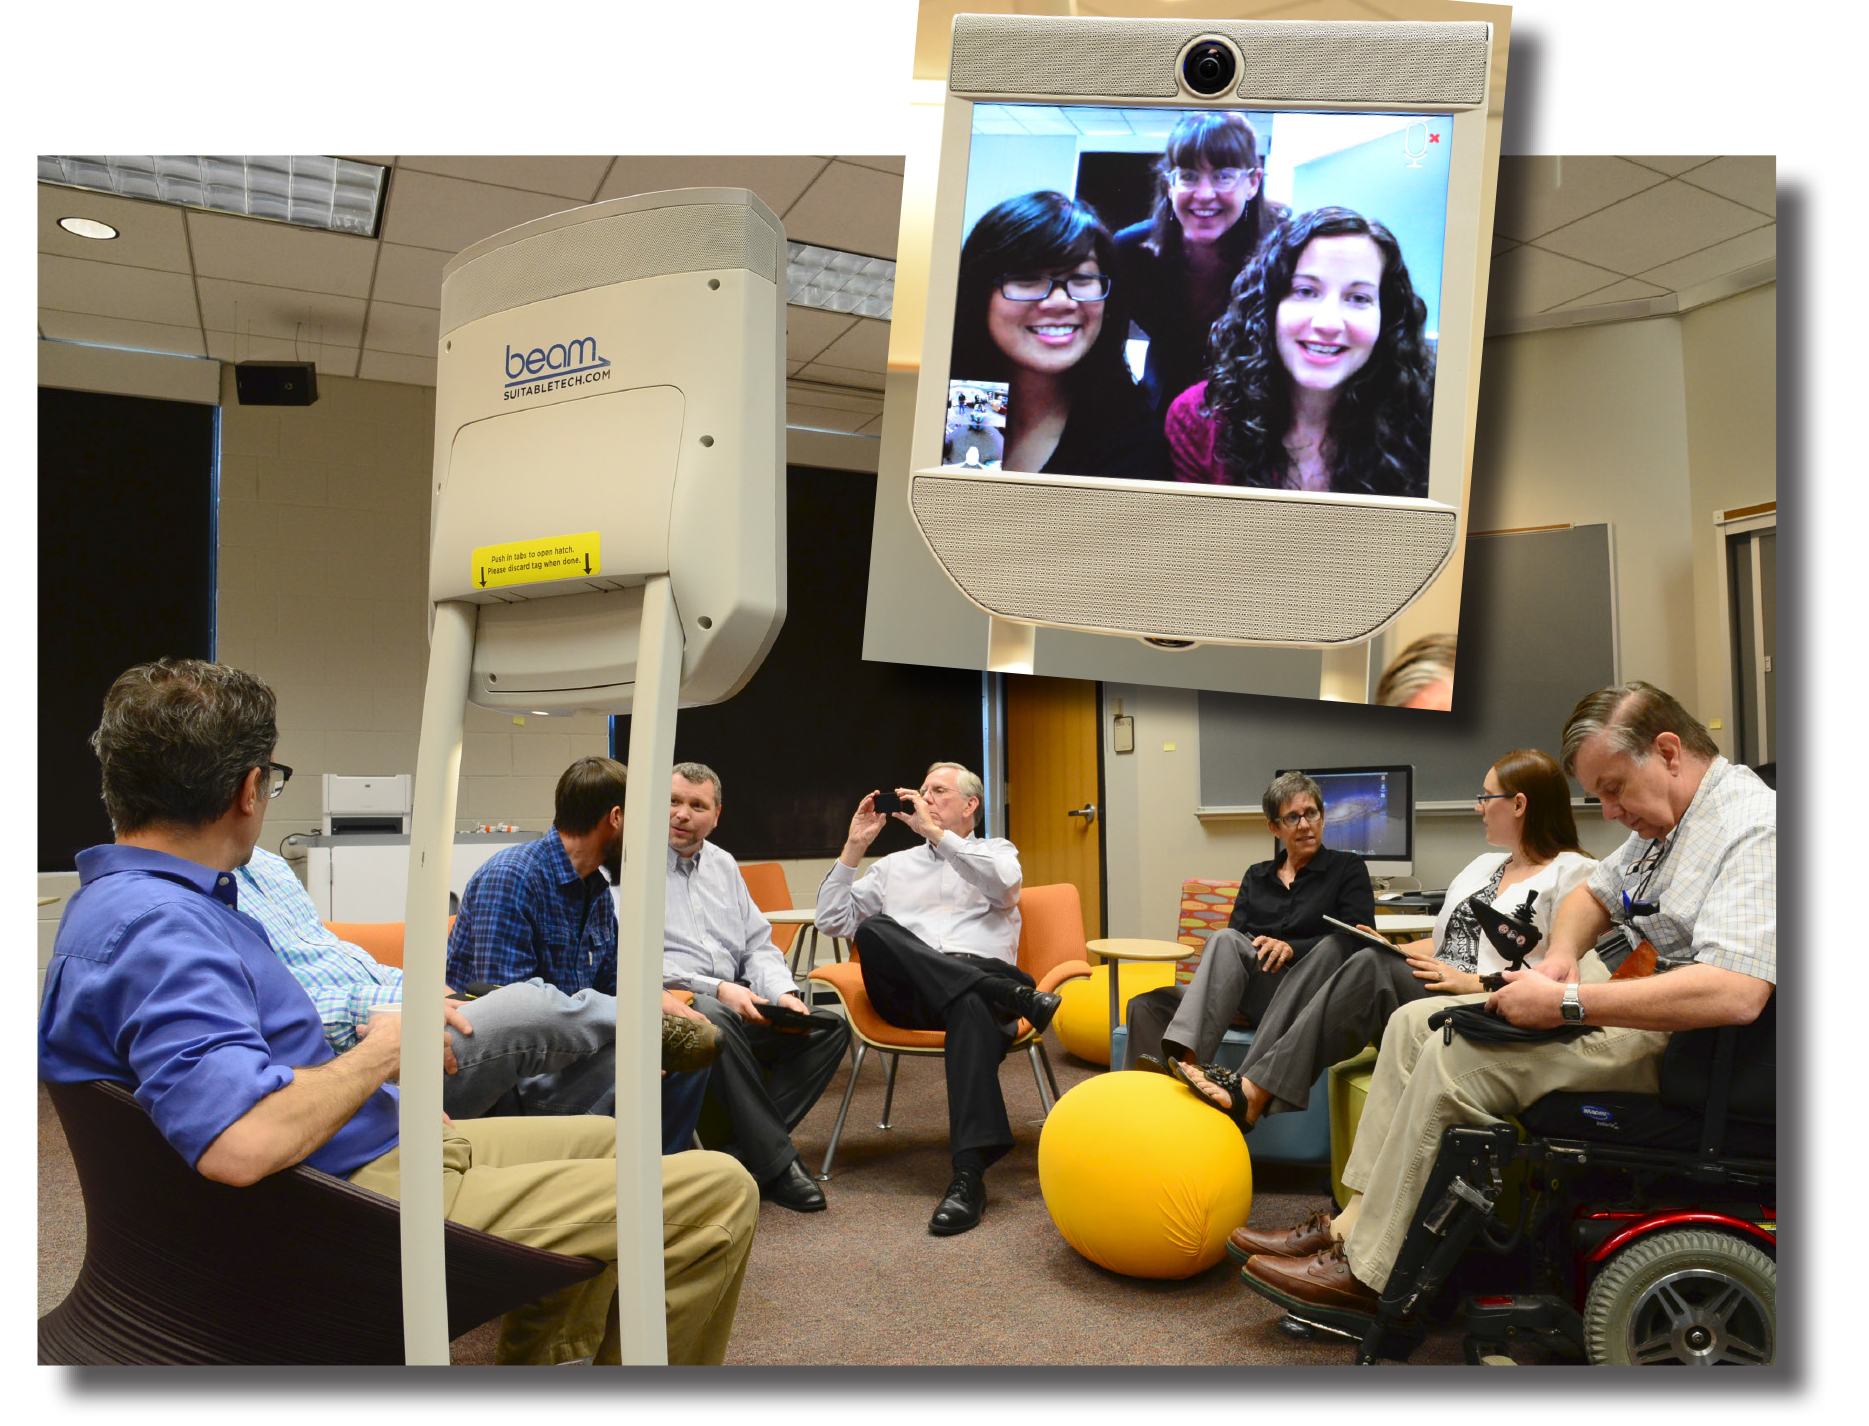 Students, staff, and faculty collaborate with offsite participants using a mobile videoconferencing device.